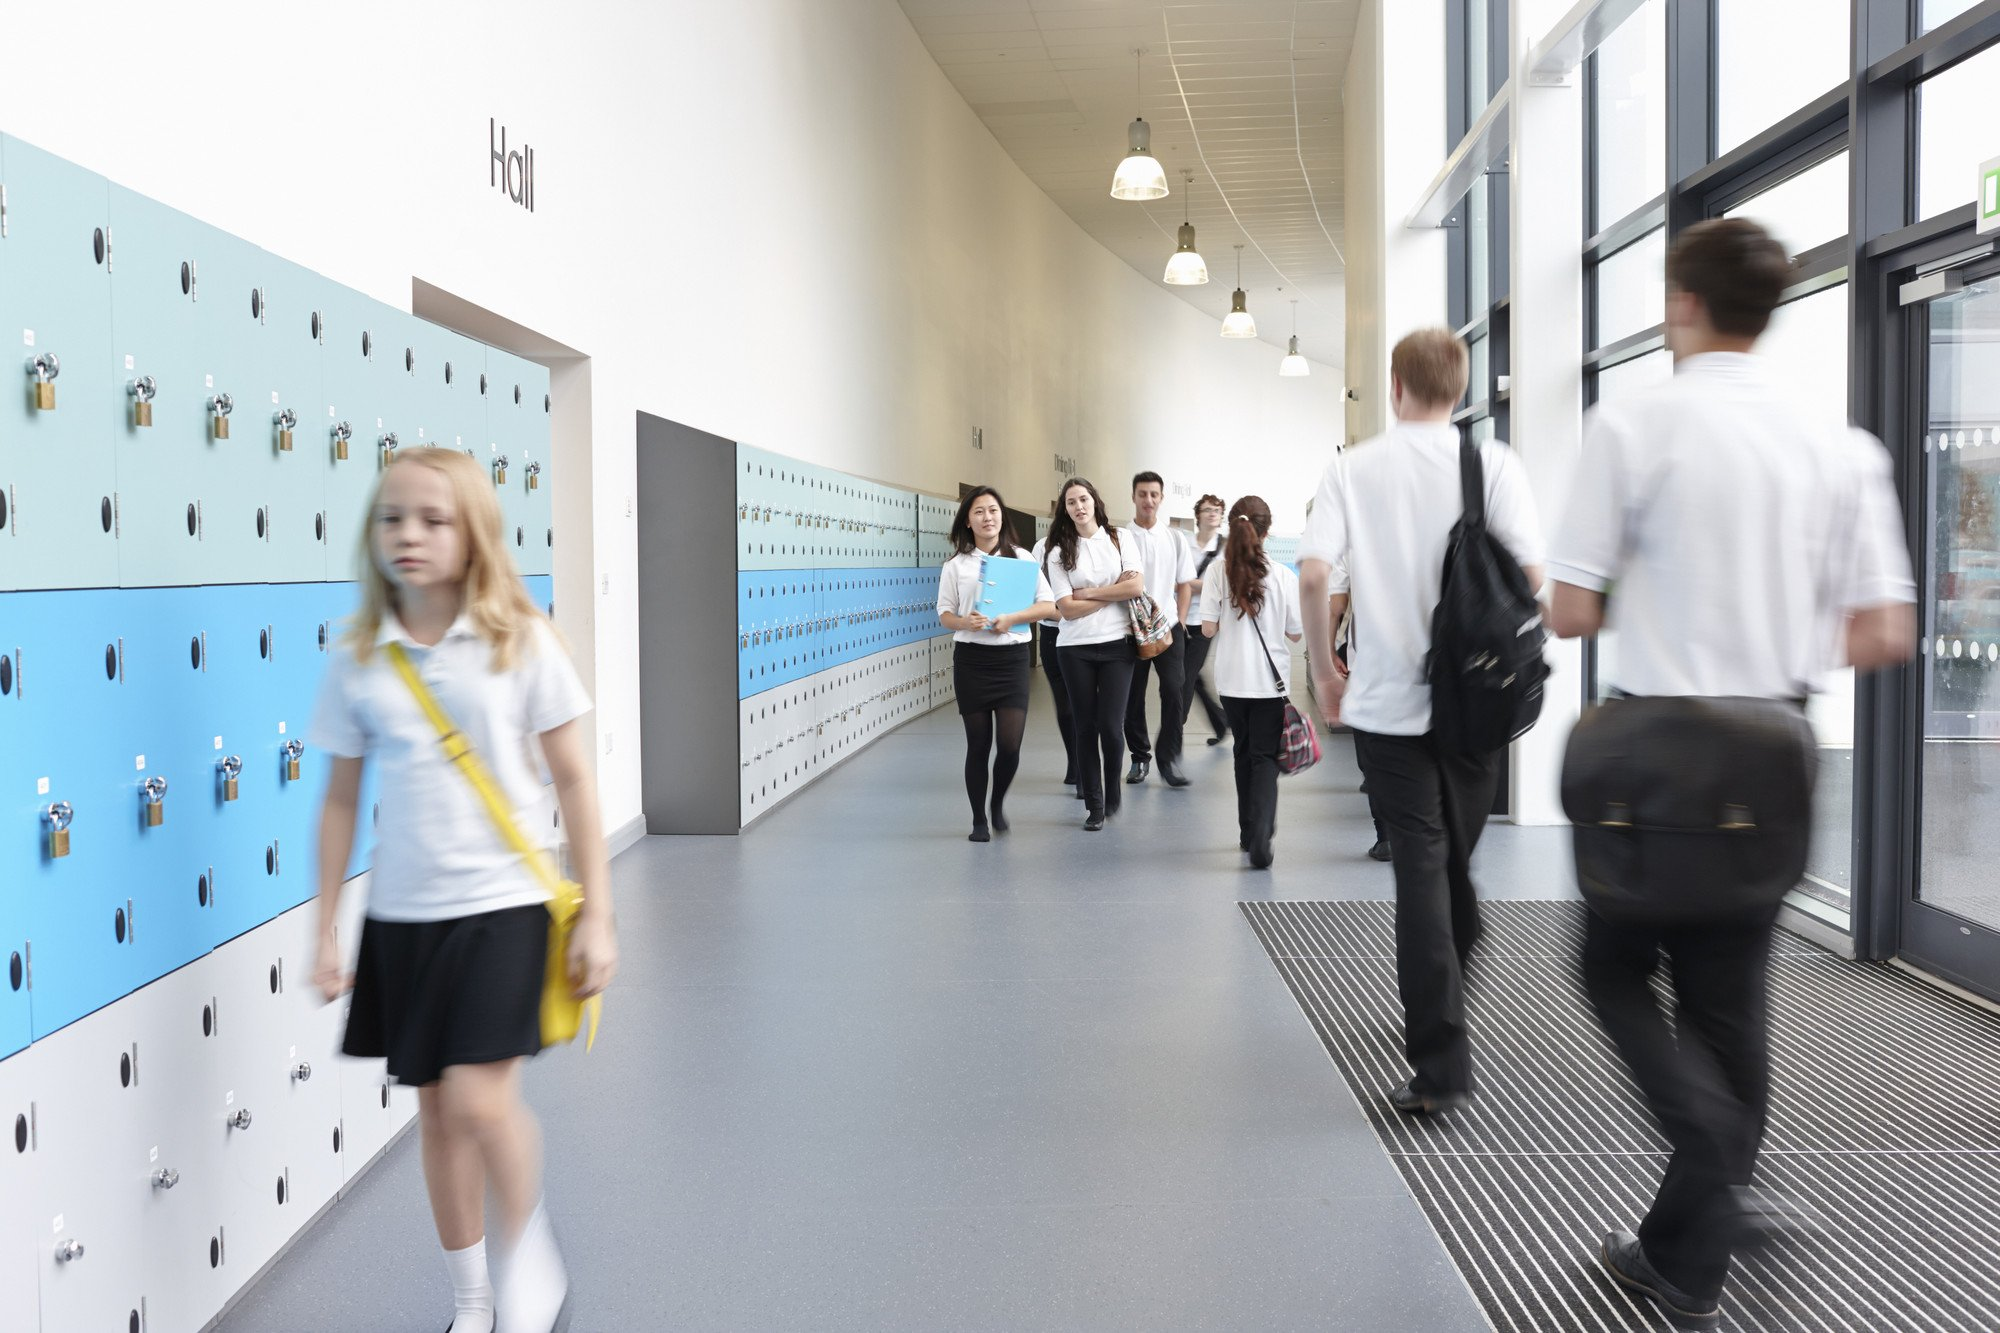 School hallway with students walking through it